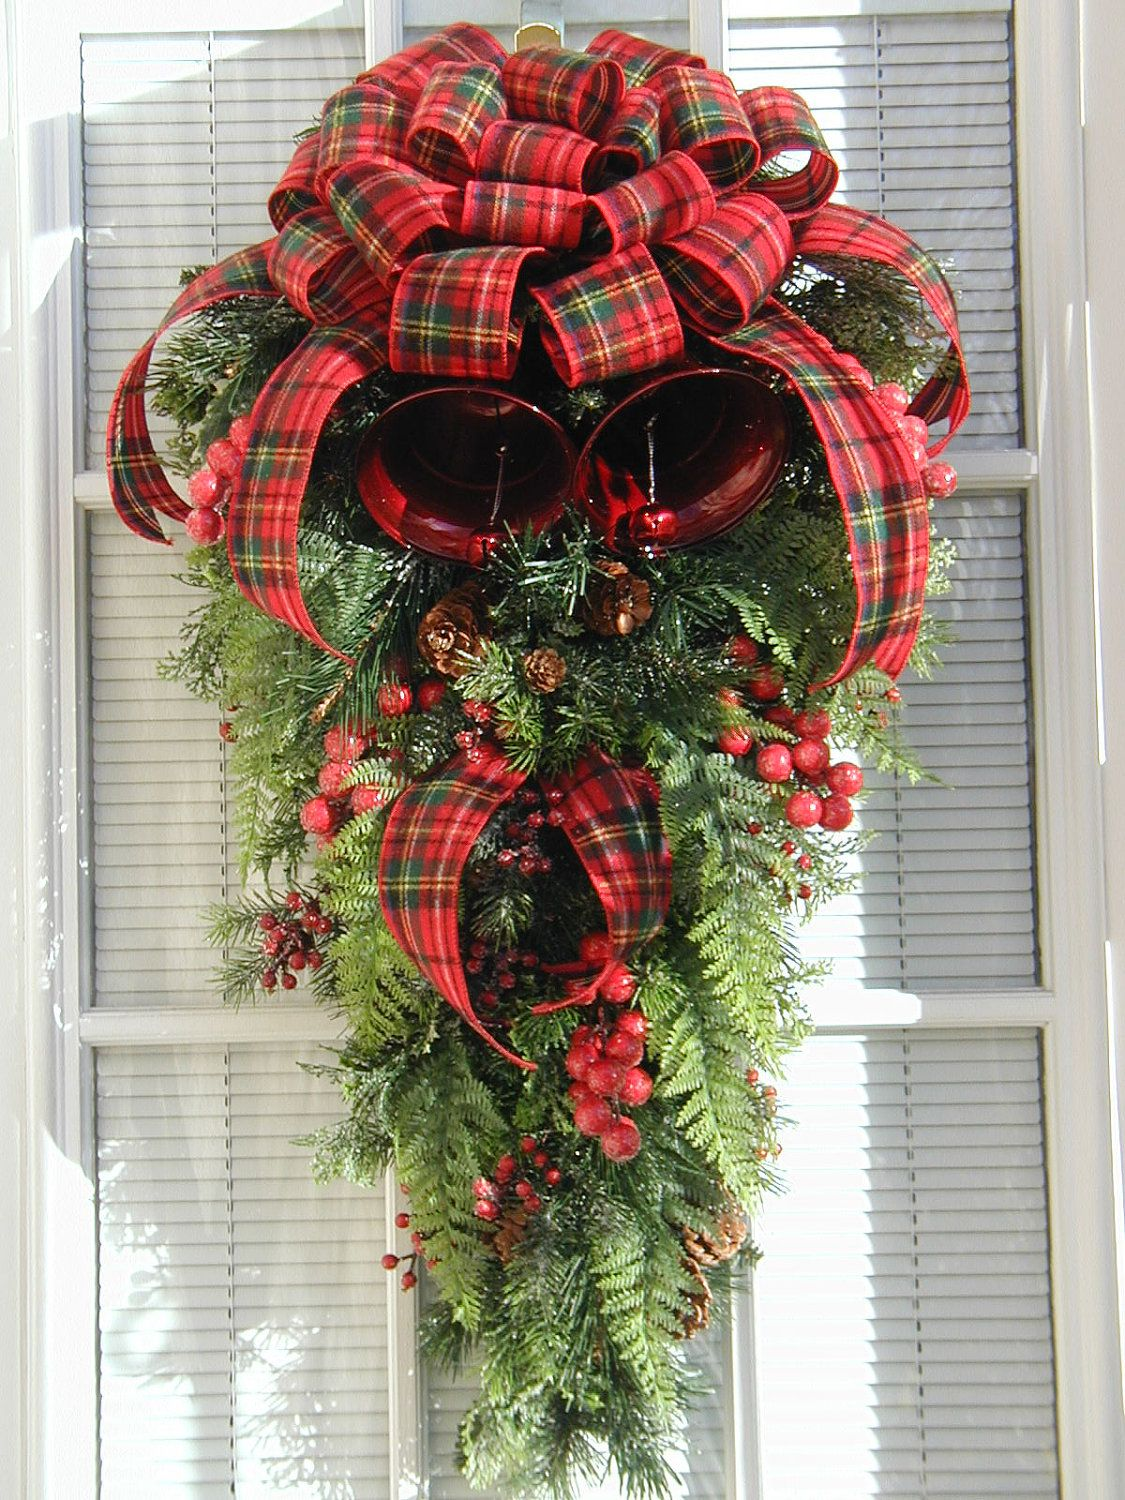 Christmas Winter Large Teardrop Pine Metal Bells Berries Door Hanging Decor Red Flannel Plai Christmas Swags Tartan Christmas Decorations Christmas Decorations